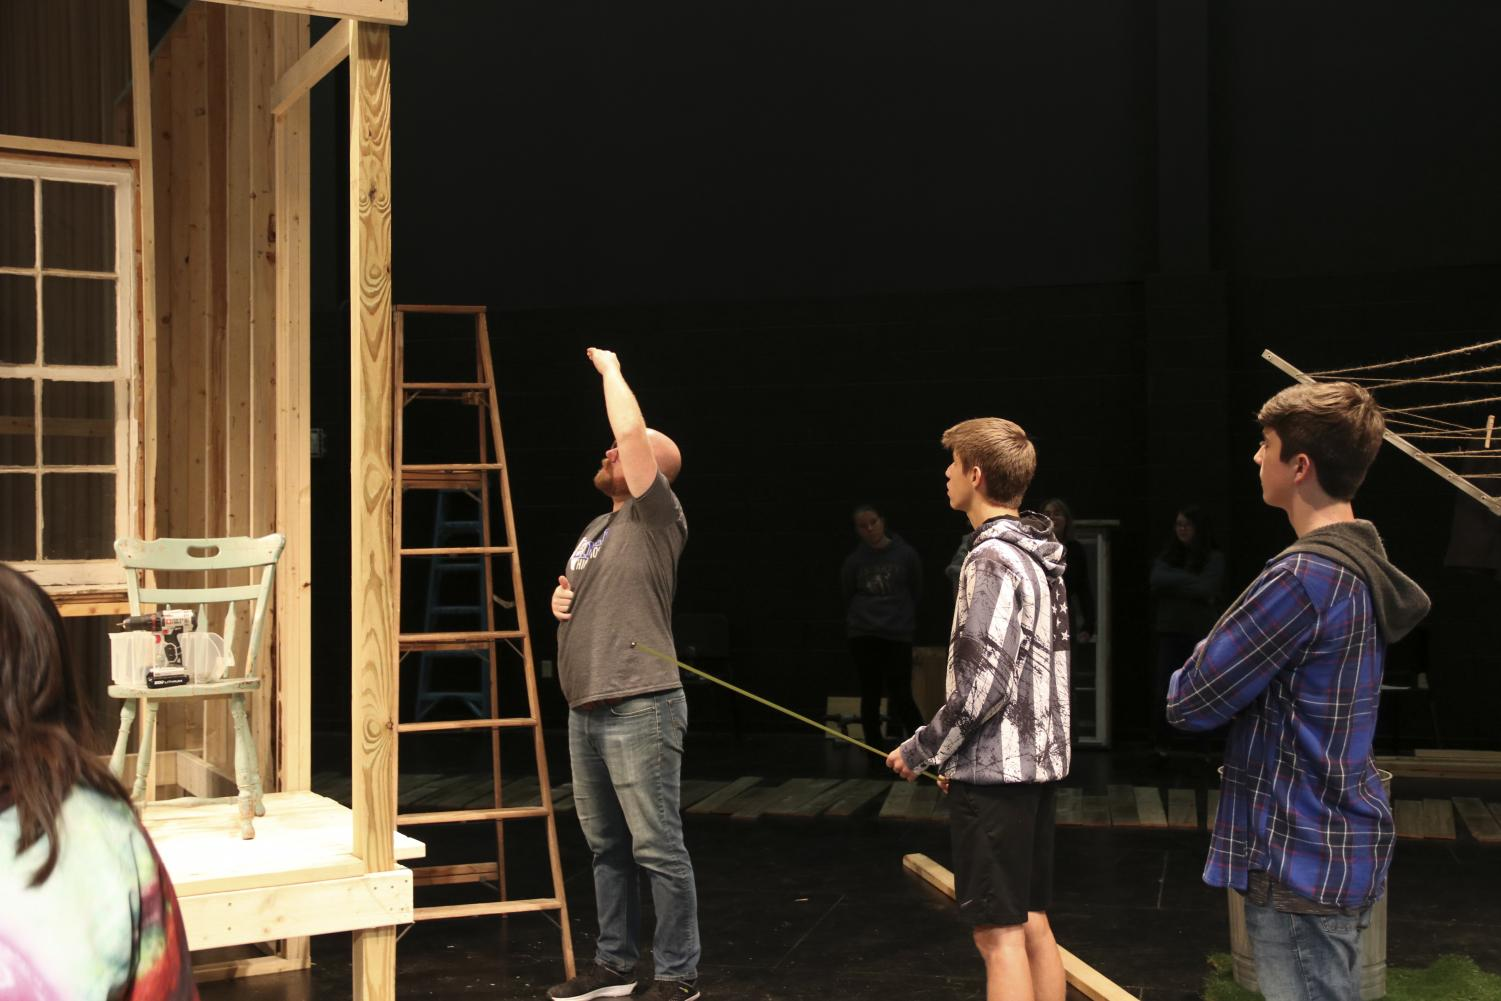 Theater director John Jarman instructs his students on his vision for the set of Picnic. The setting takes place outside on labor day weekend.